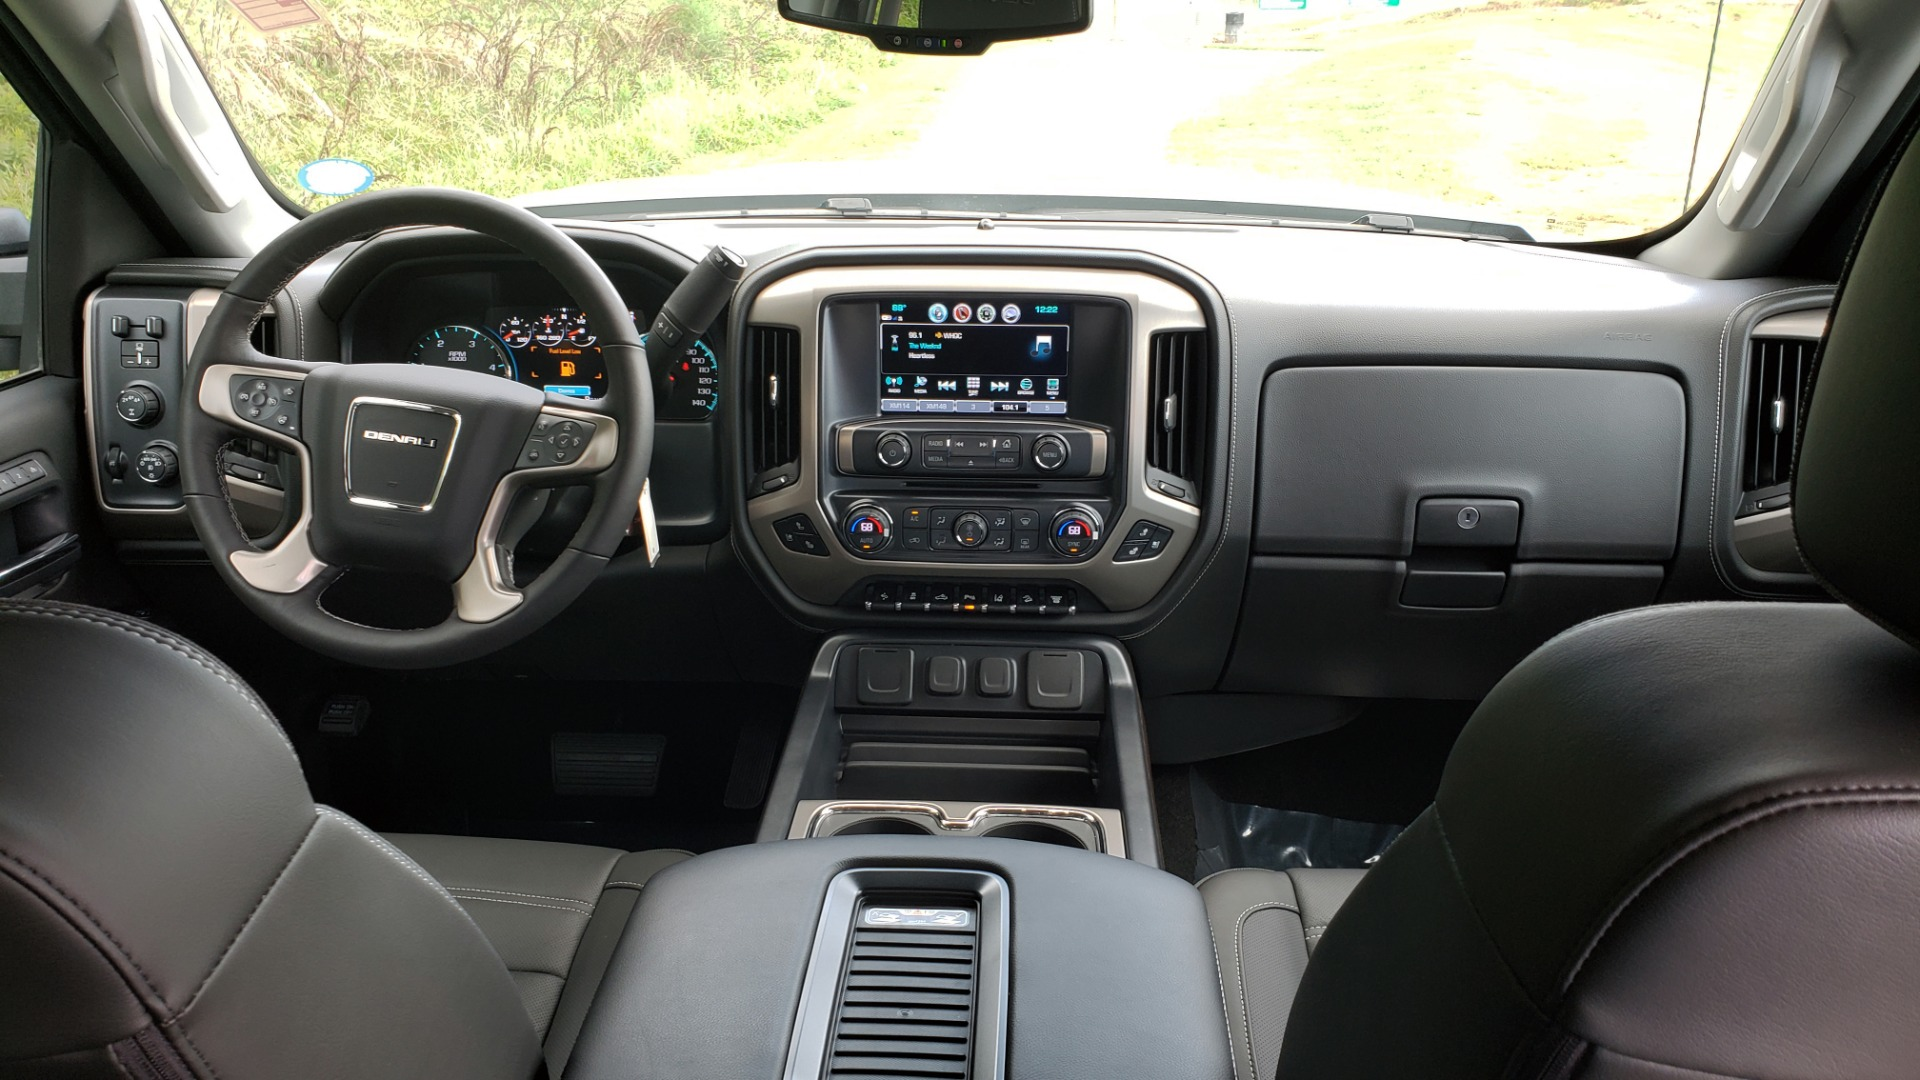 Used 2018 GMC SIERRA 2500HD DENALI 4WD / 6.6L DURAMAX / NAV / SUNROOF / BOSE / REARVIEW for sale Sold at Formula Imports in Charlotte NC 28227 86